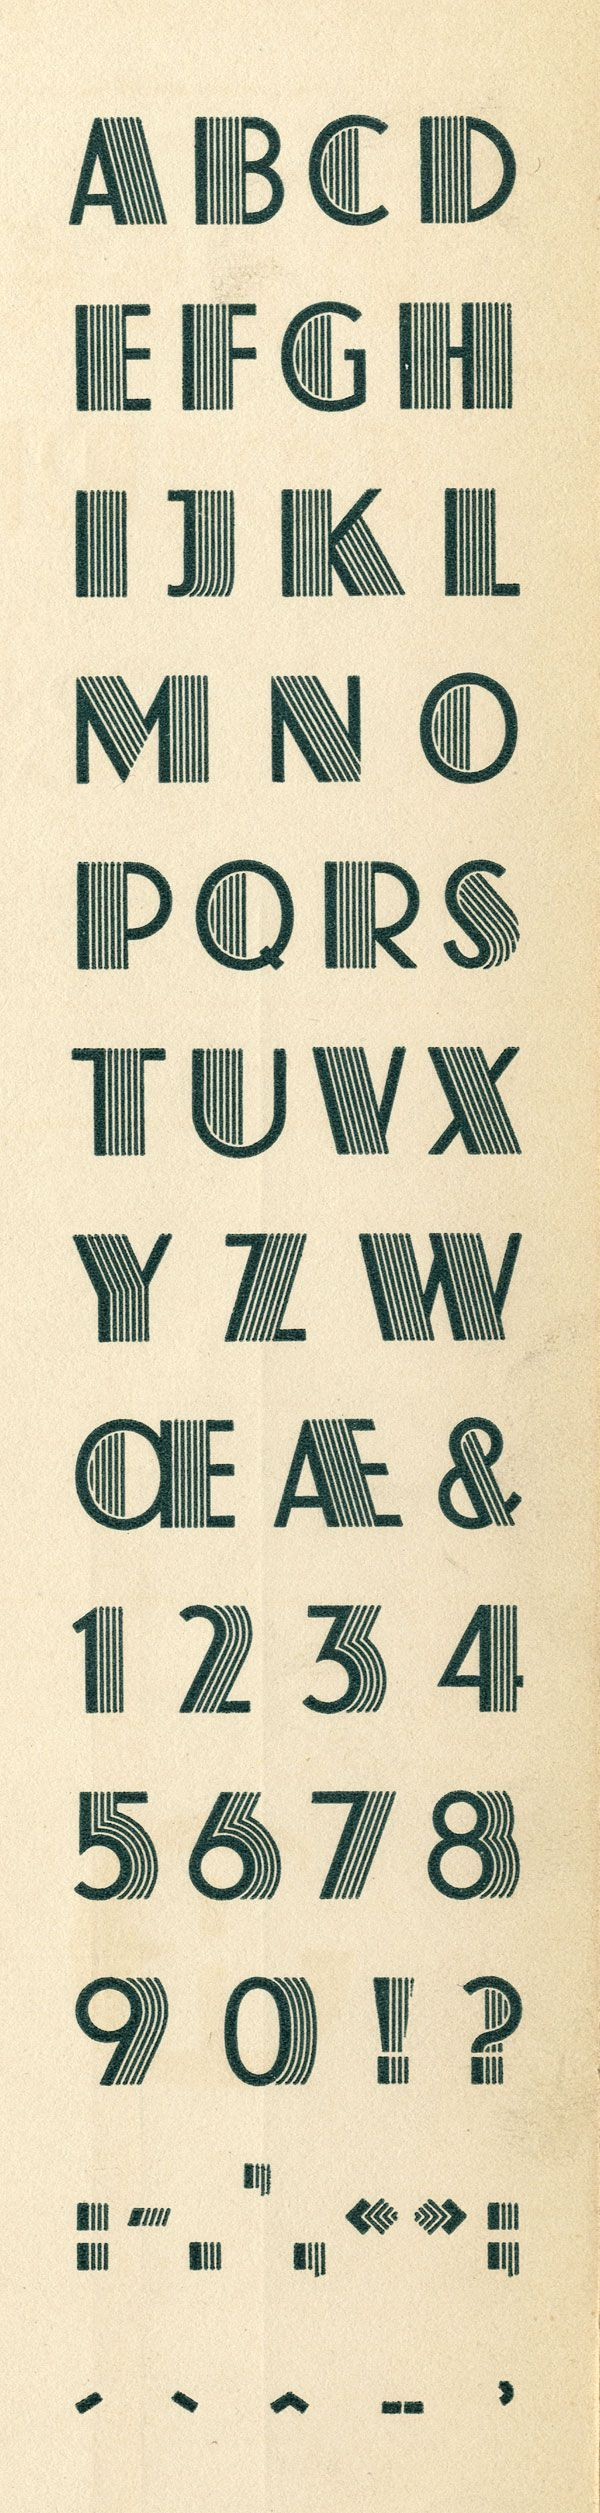 1933 typography - Google Search